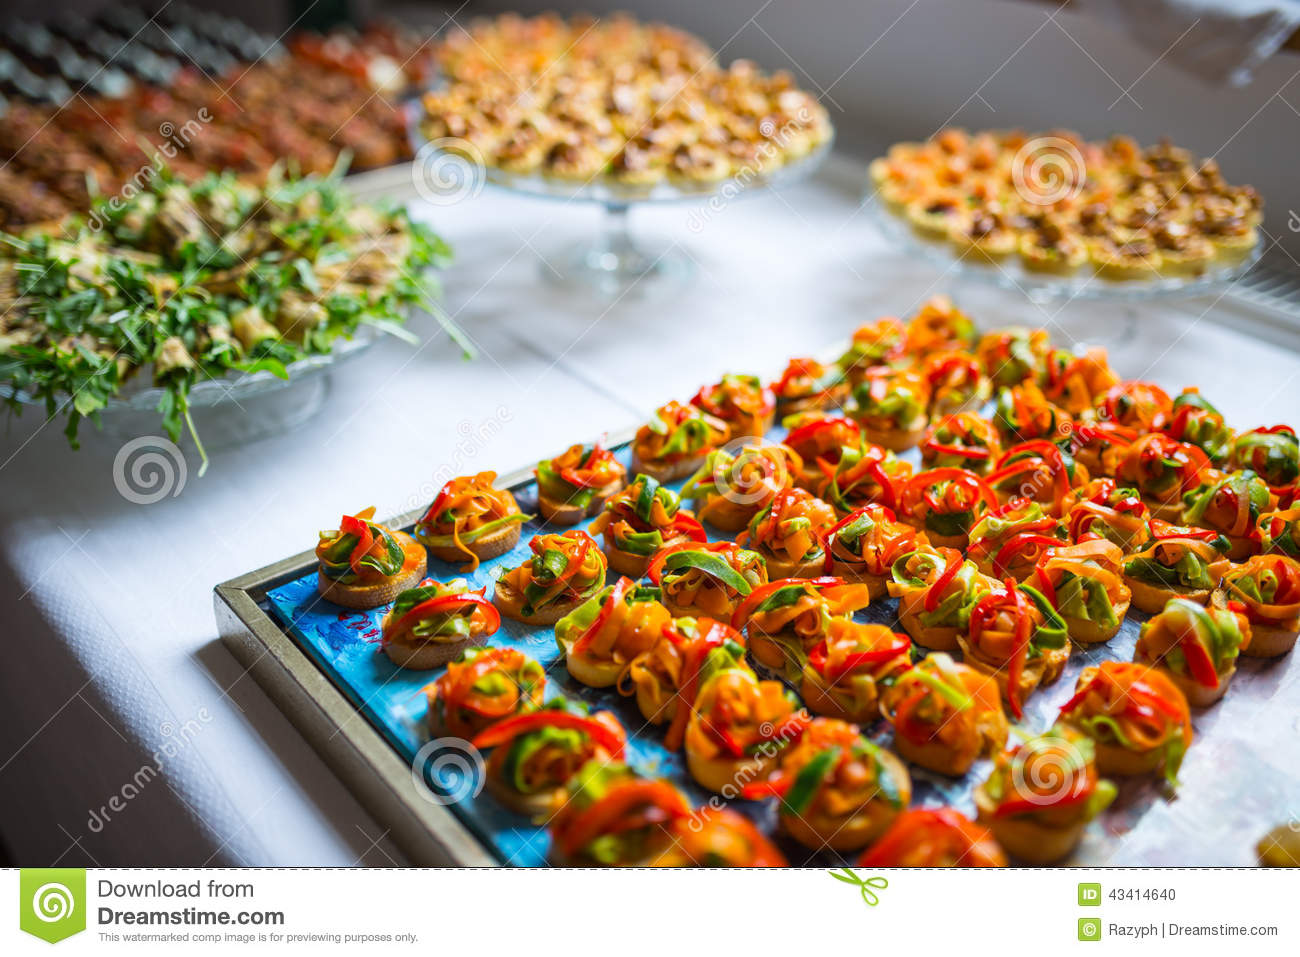 Catering canape tray stock photo image 43414640 for Canape platters